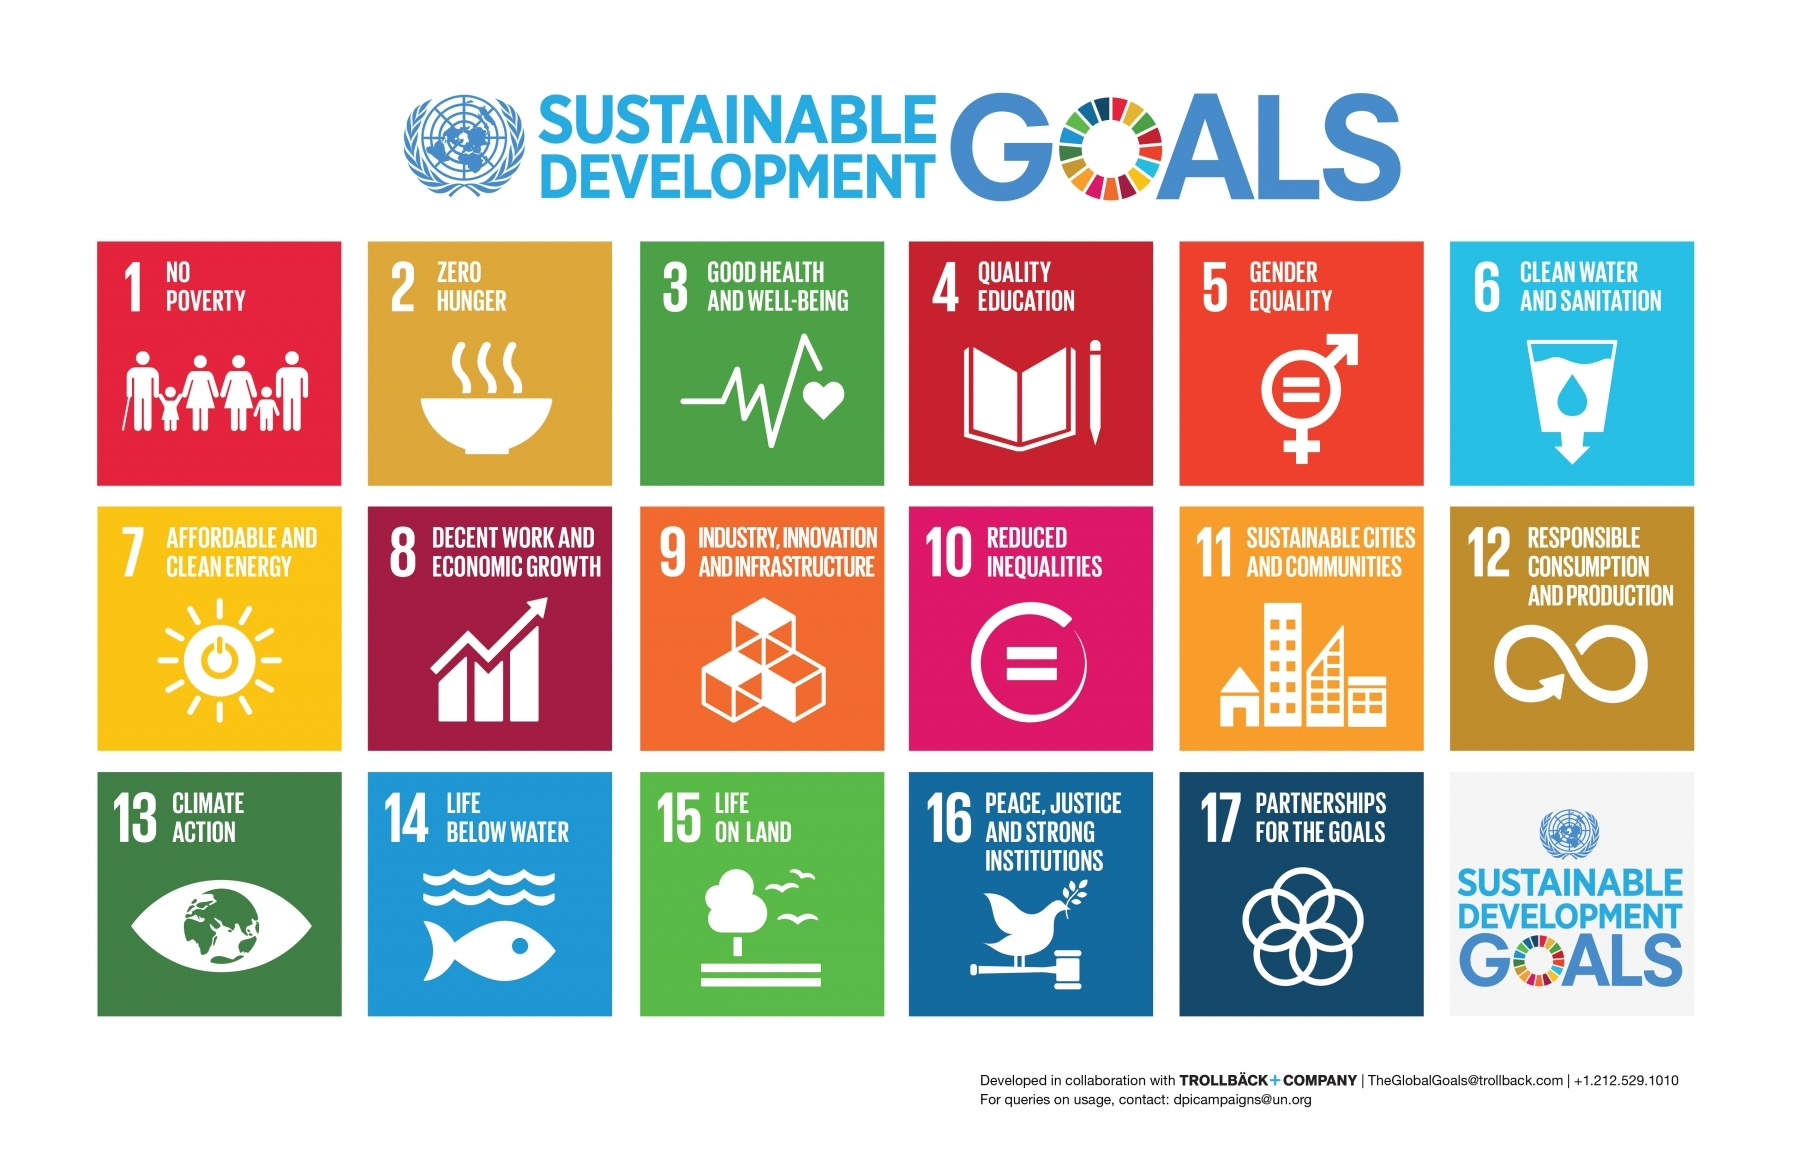 sdgs-in-a-nutshell-courtesy-un.jpg